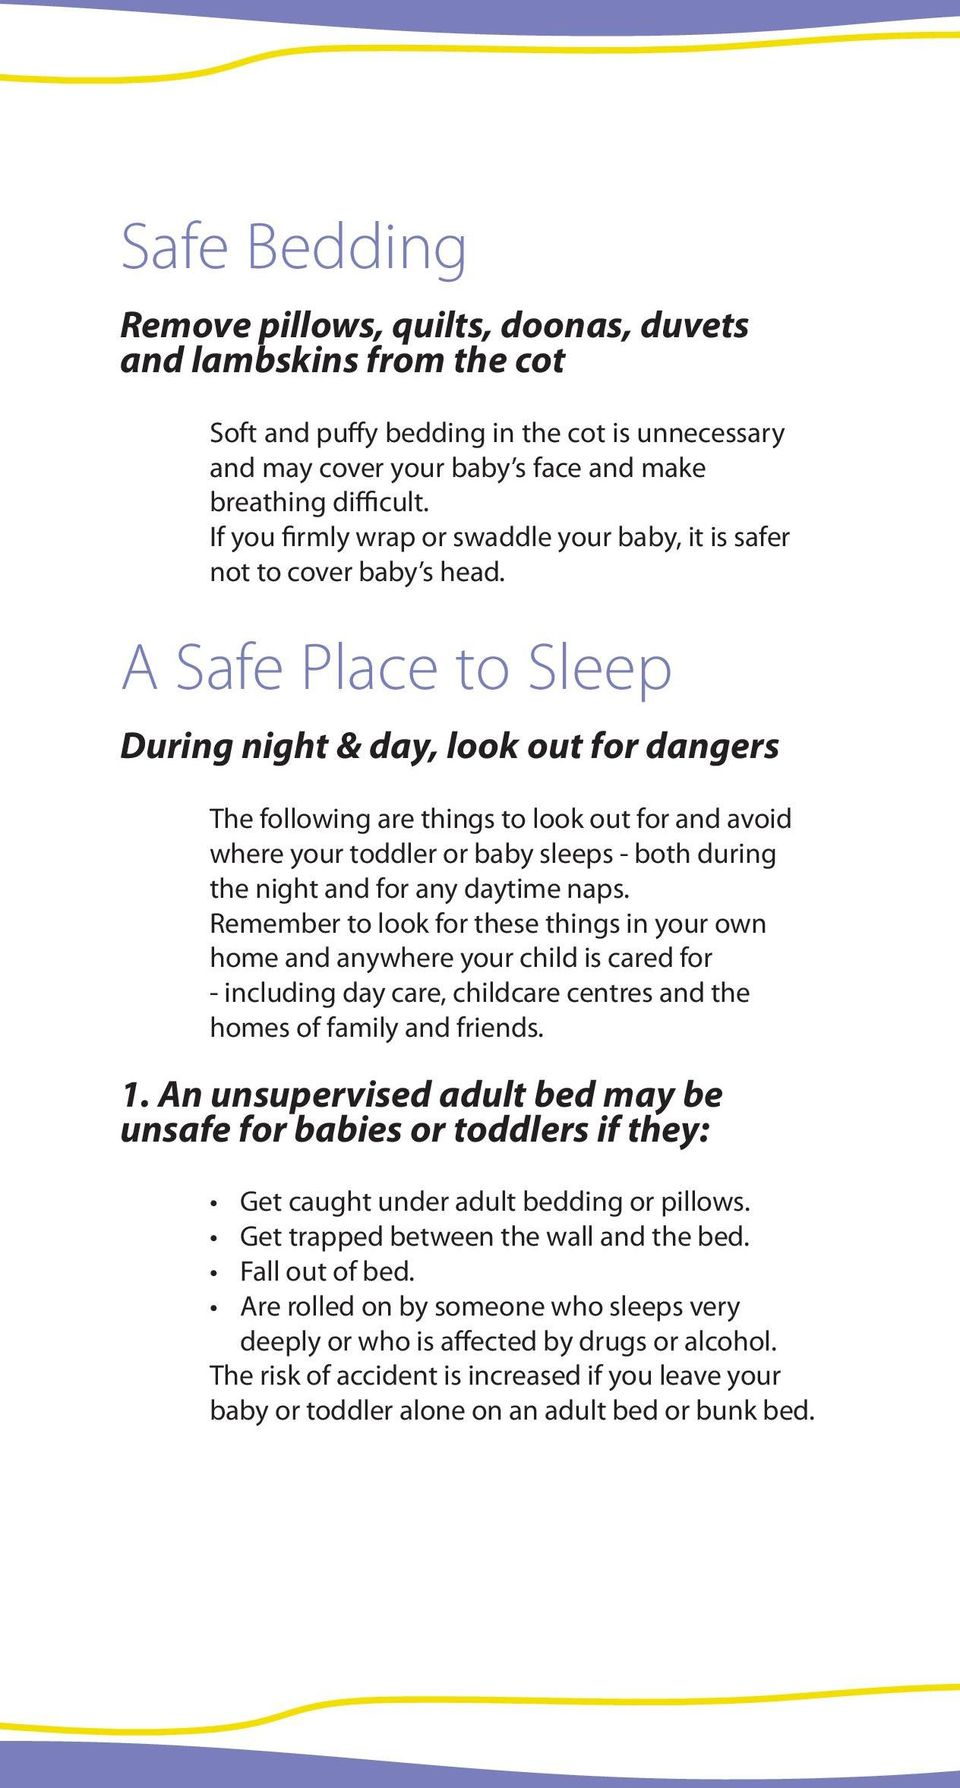 A Safe Place to Sleep During night & day, look out for dangers The following are things to look out for and avoid where your toddler or baby sleeps - both during the night and for any daytime naps.